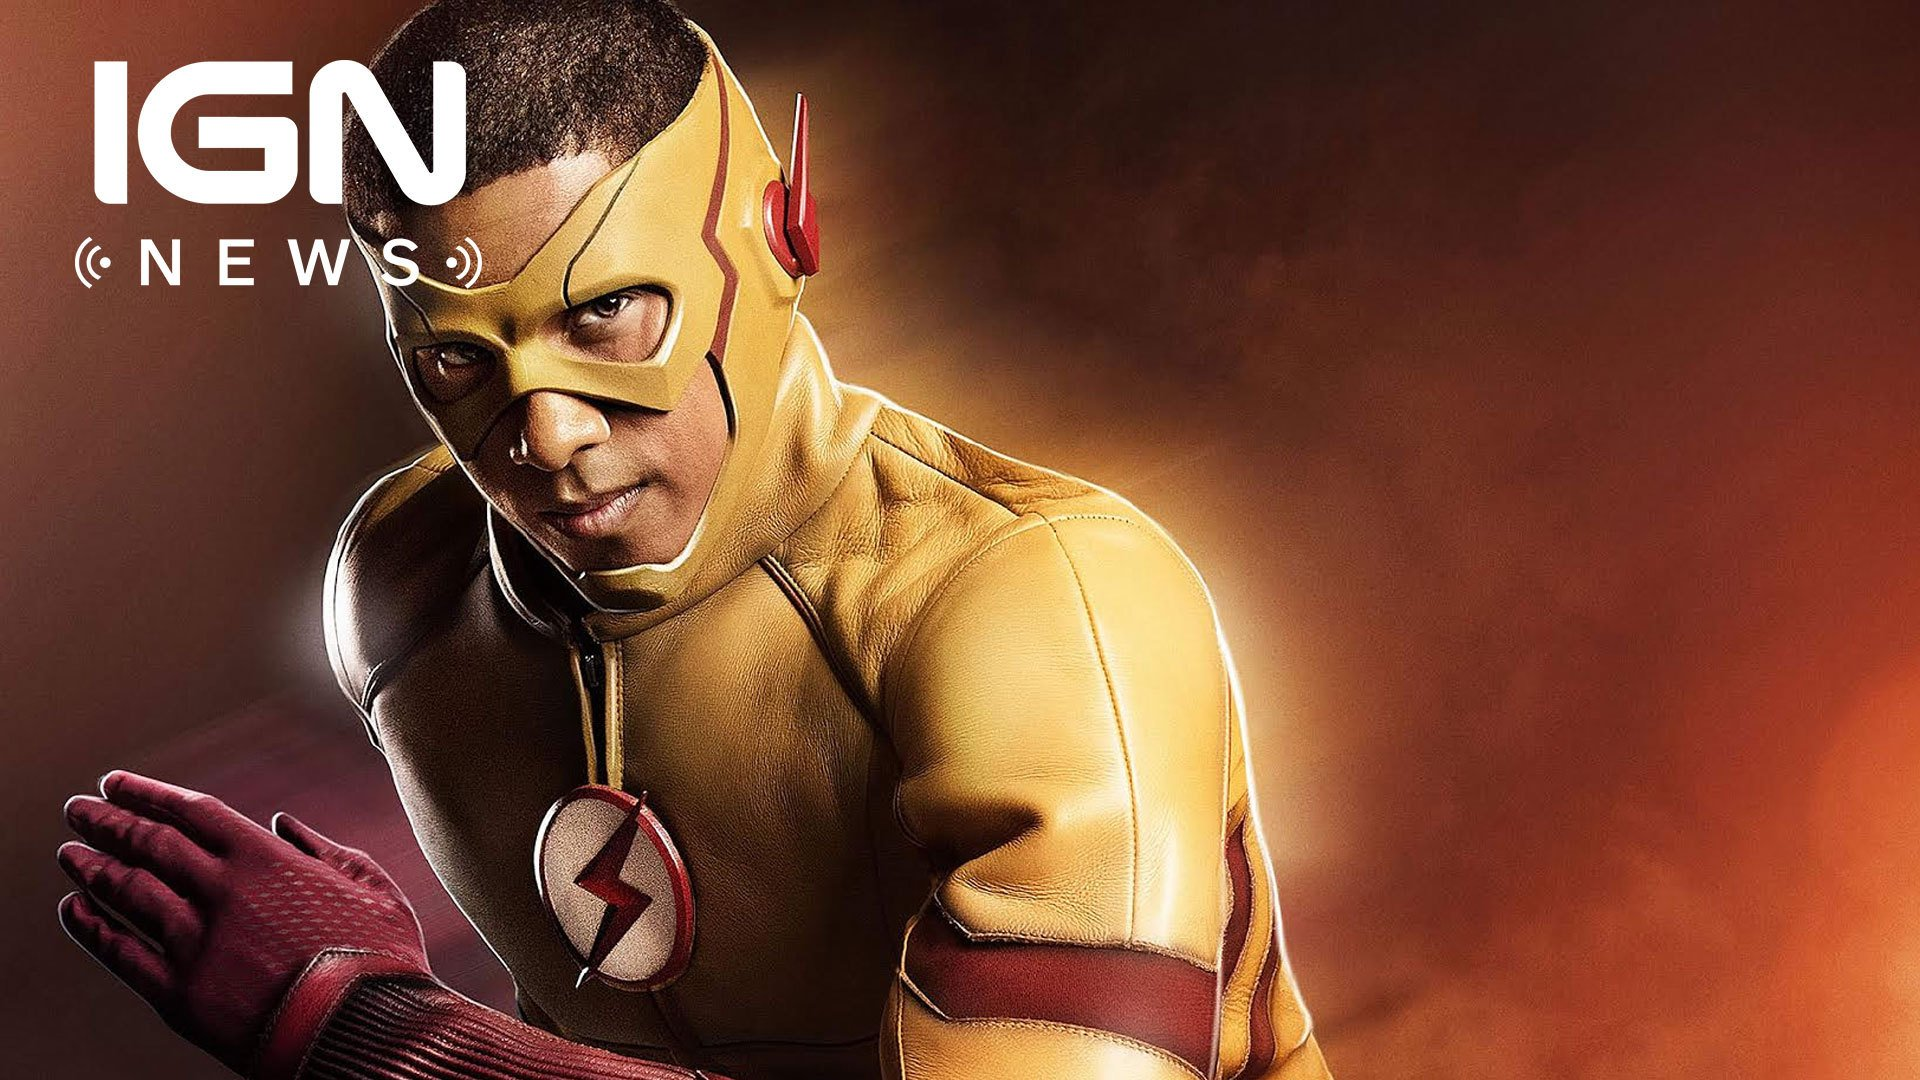 #KidFlash is joining the #LegendsOfTomorrow!!  https://t.co/dvsxoVYfoR https://t.co/YB5mPHiWUM